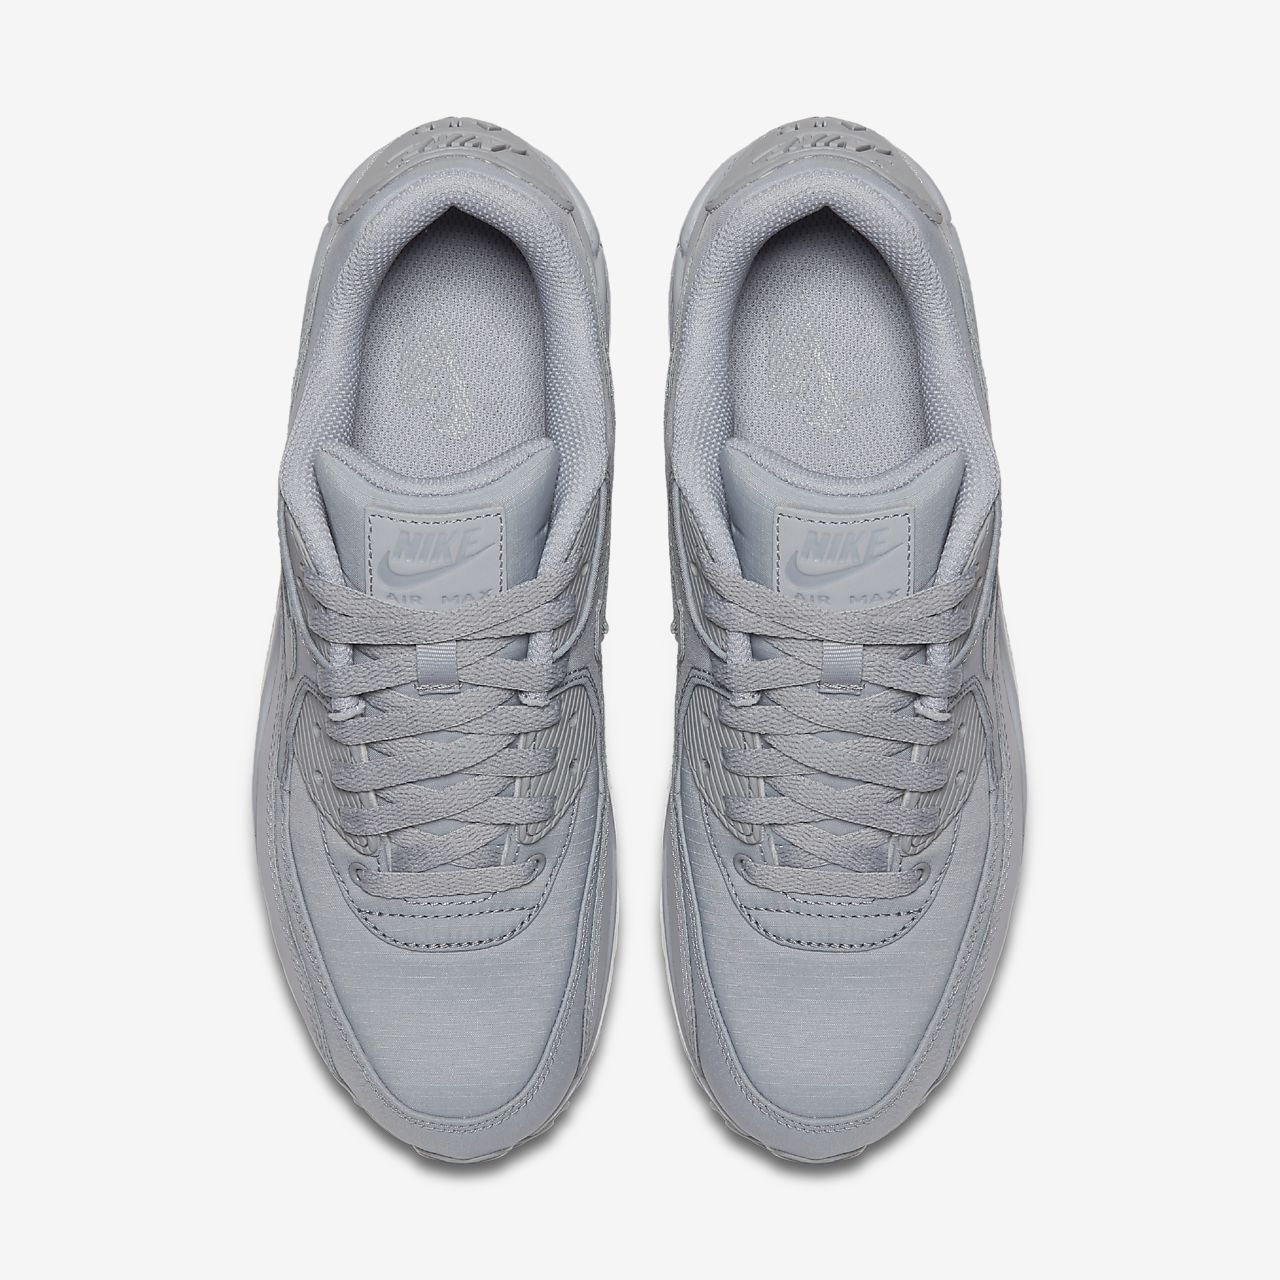 90 Max Chaussure Nike Pour Air Essential HommeBe HE2D9I